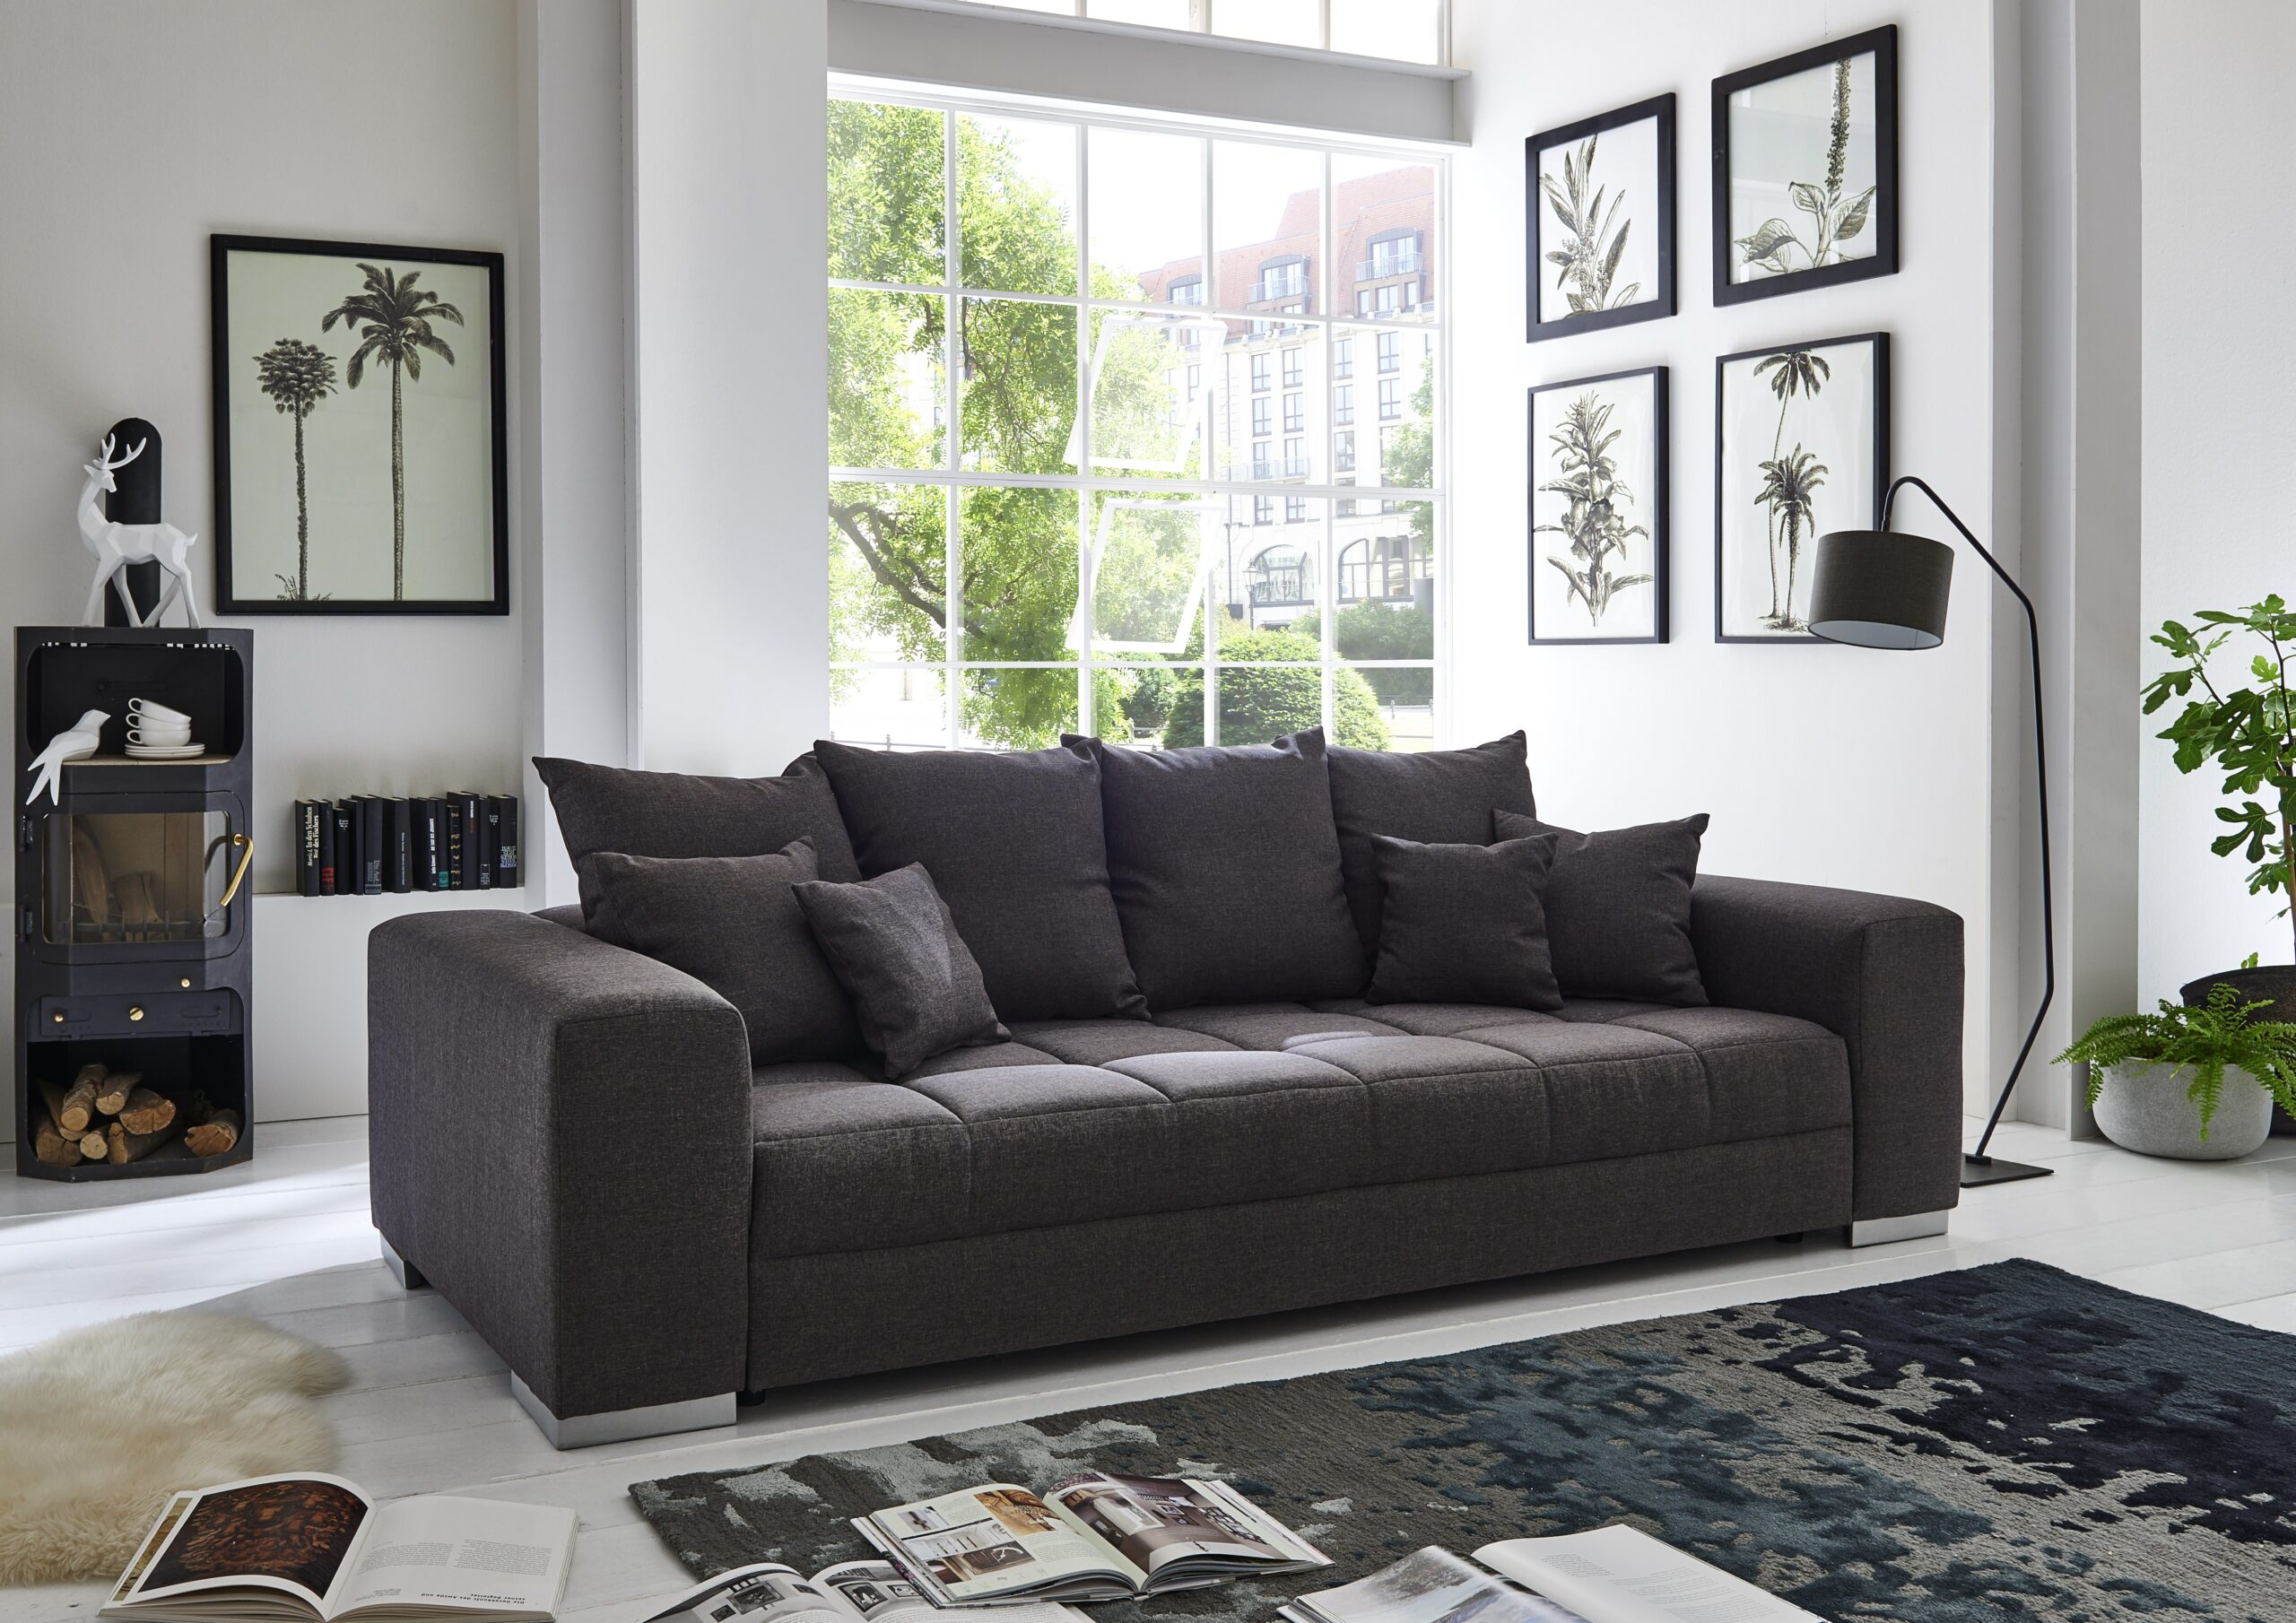 Couchtisch Schüssel Tom Tailor Big Sofa Candy Polstermbel Upper East Megasofa